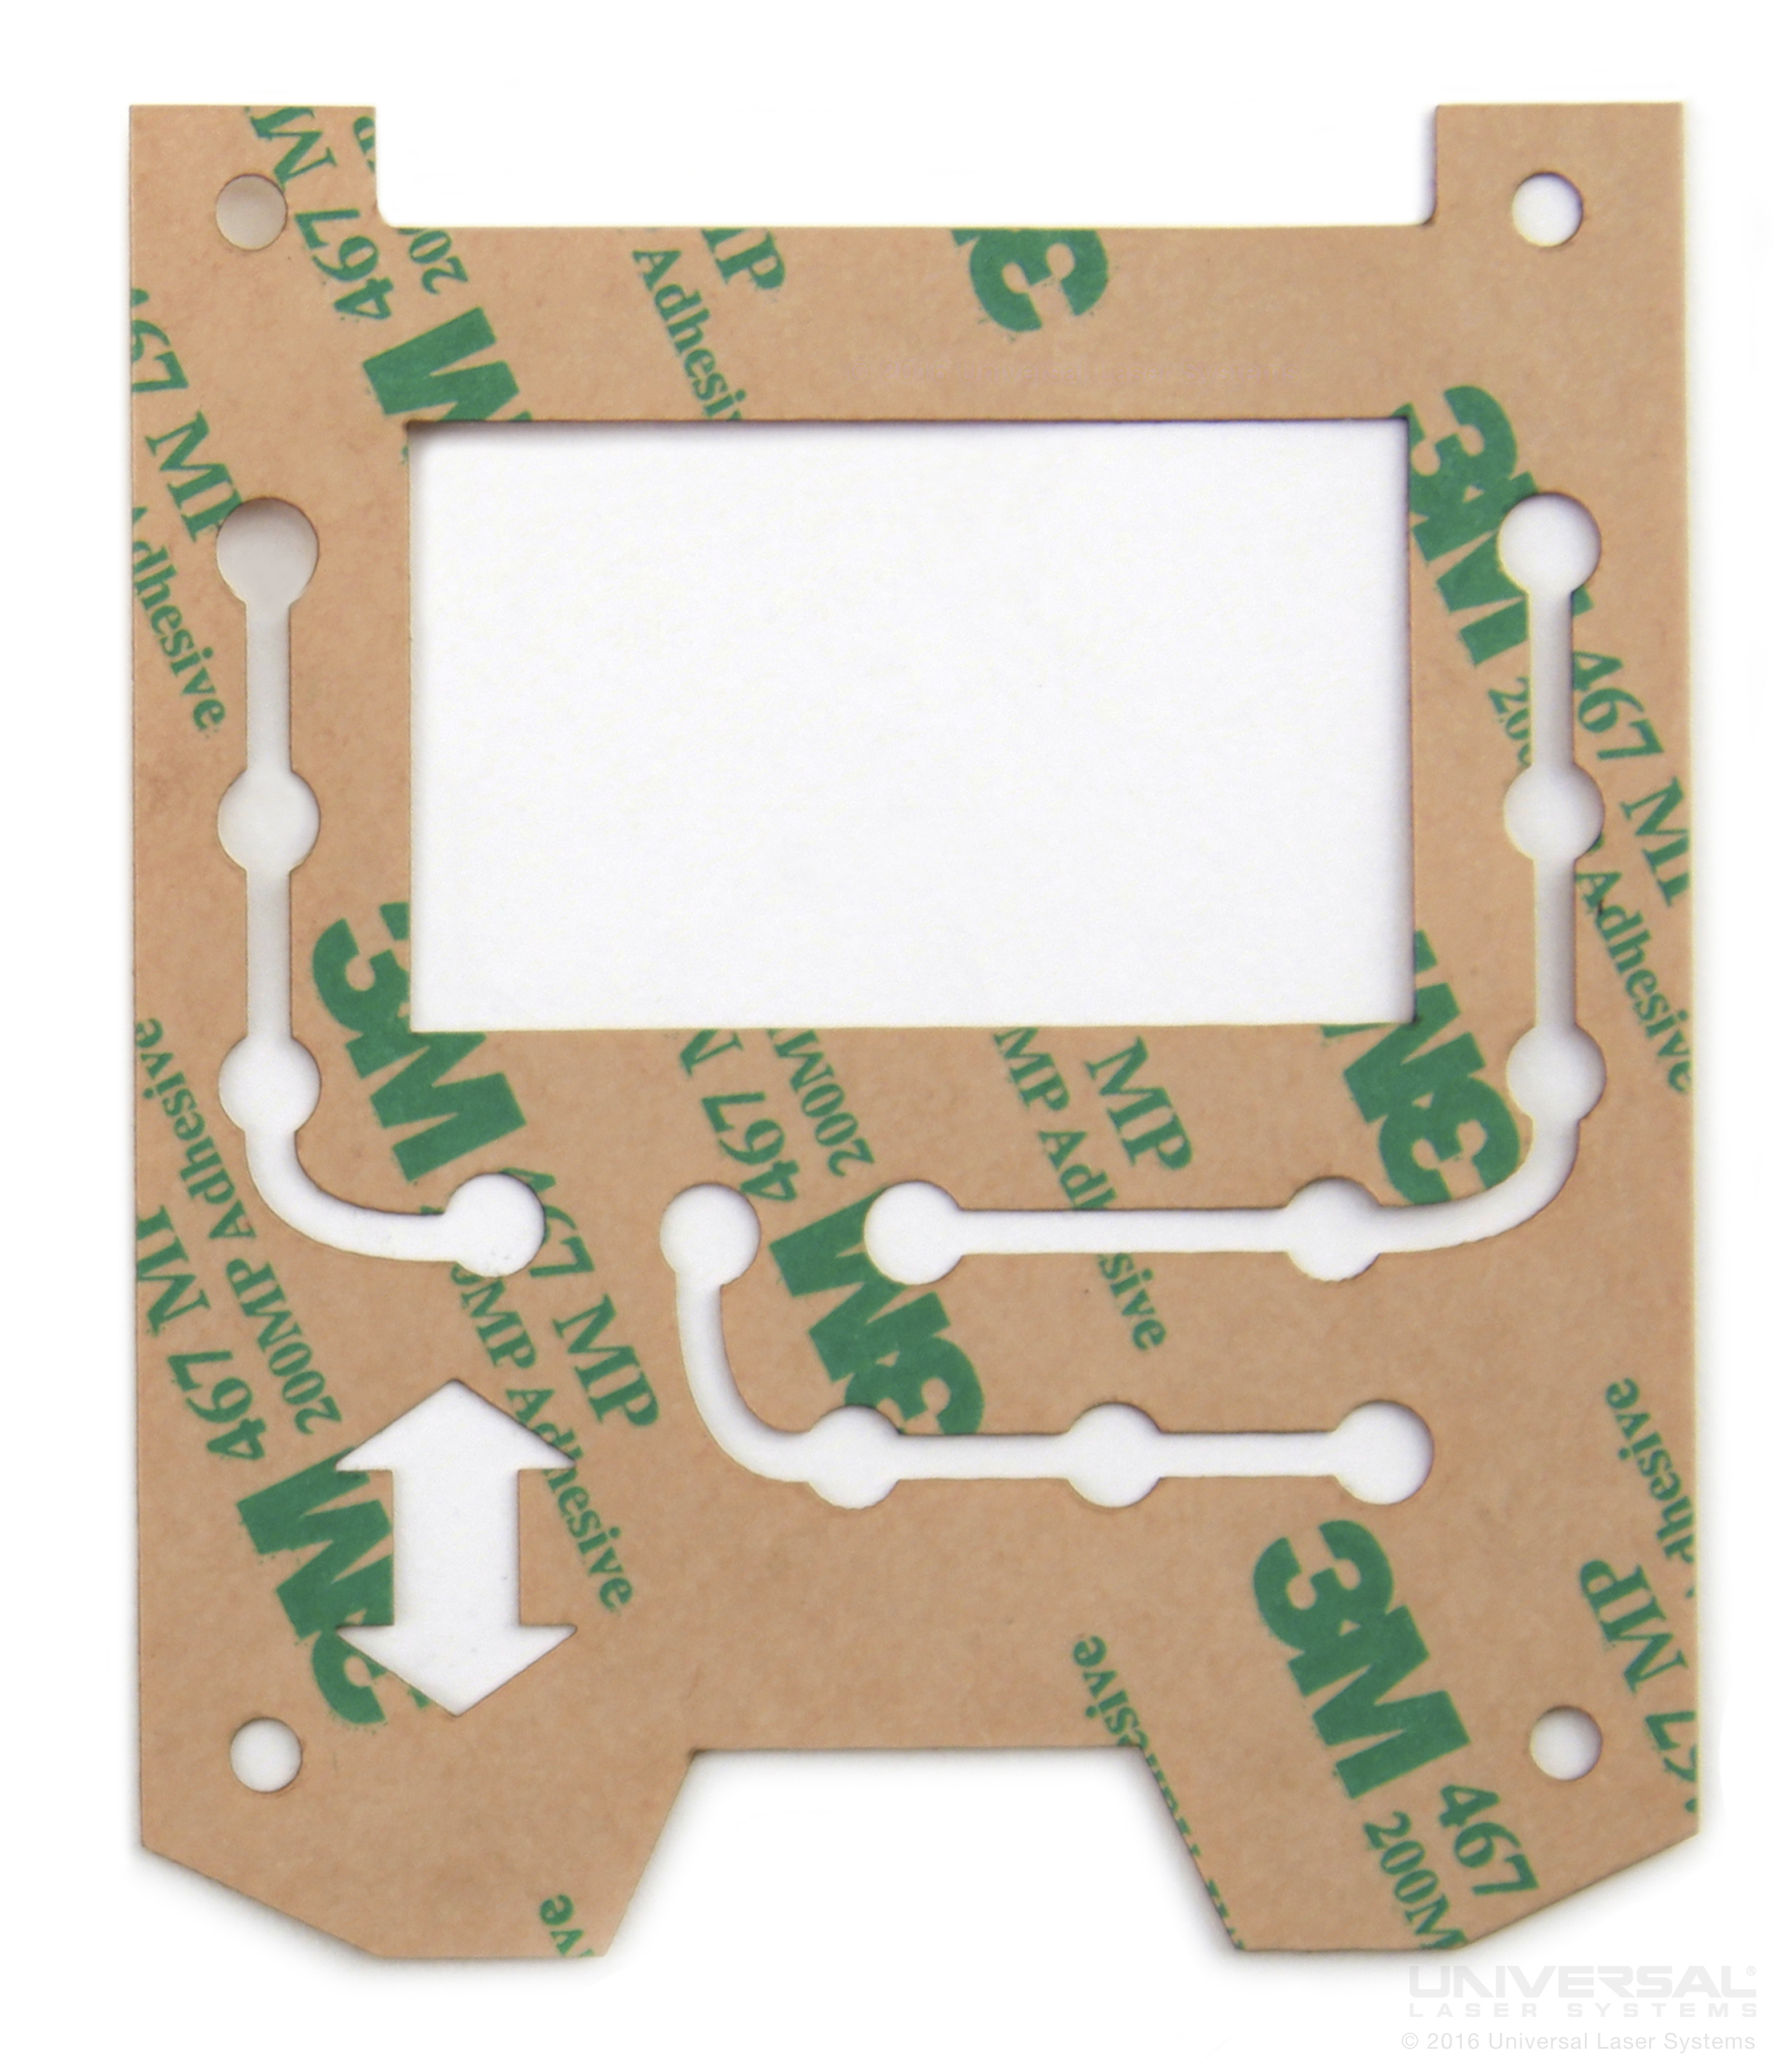 Membrane Switch Spacer Laser Cutting with a 10.6 micron CO<sub>2</sub> Laser